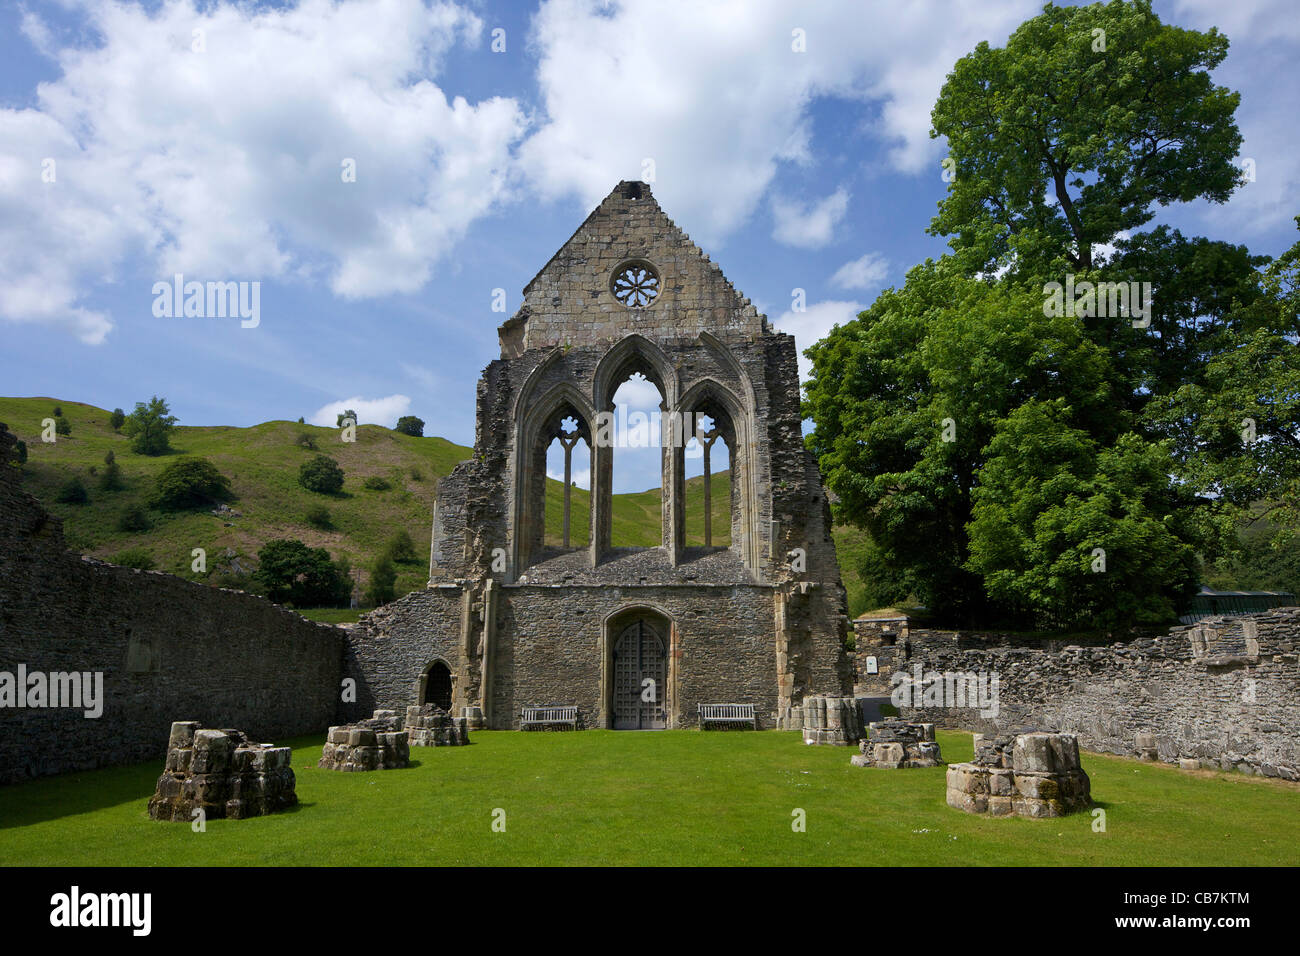 Valle Crucis ruined Cistercian abbey in Llantysilio, near Llangollen, Wales, Cymru, UK, United Kingdom, Stock Photo